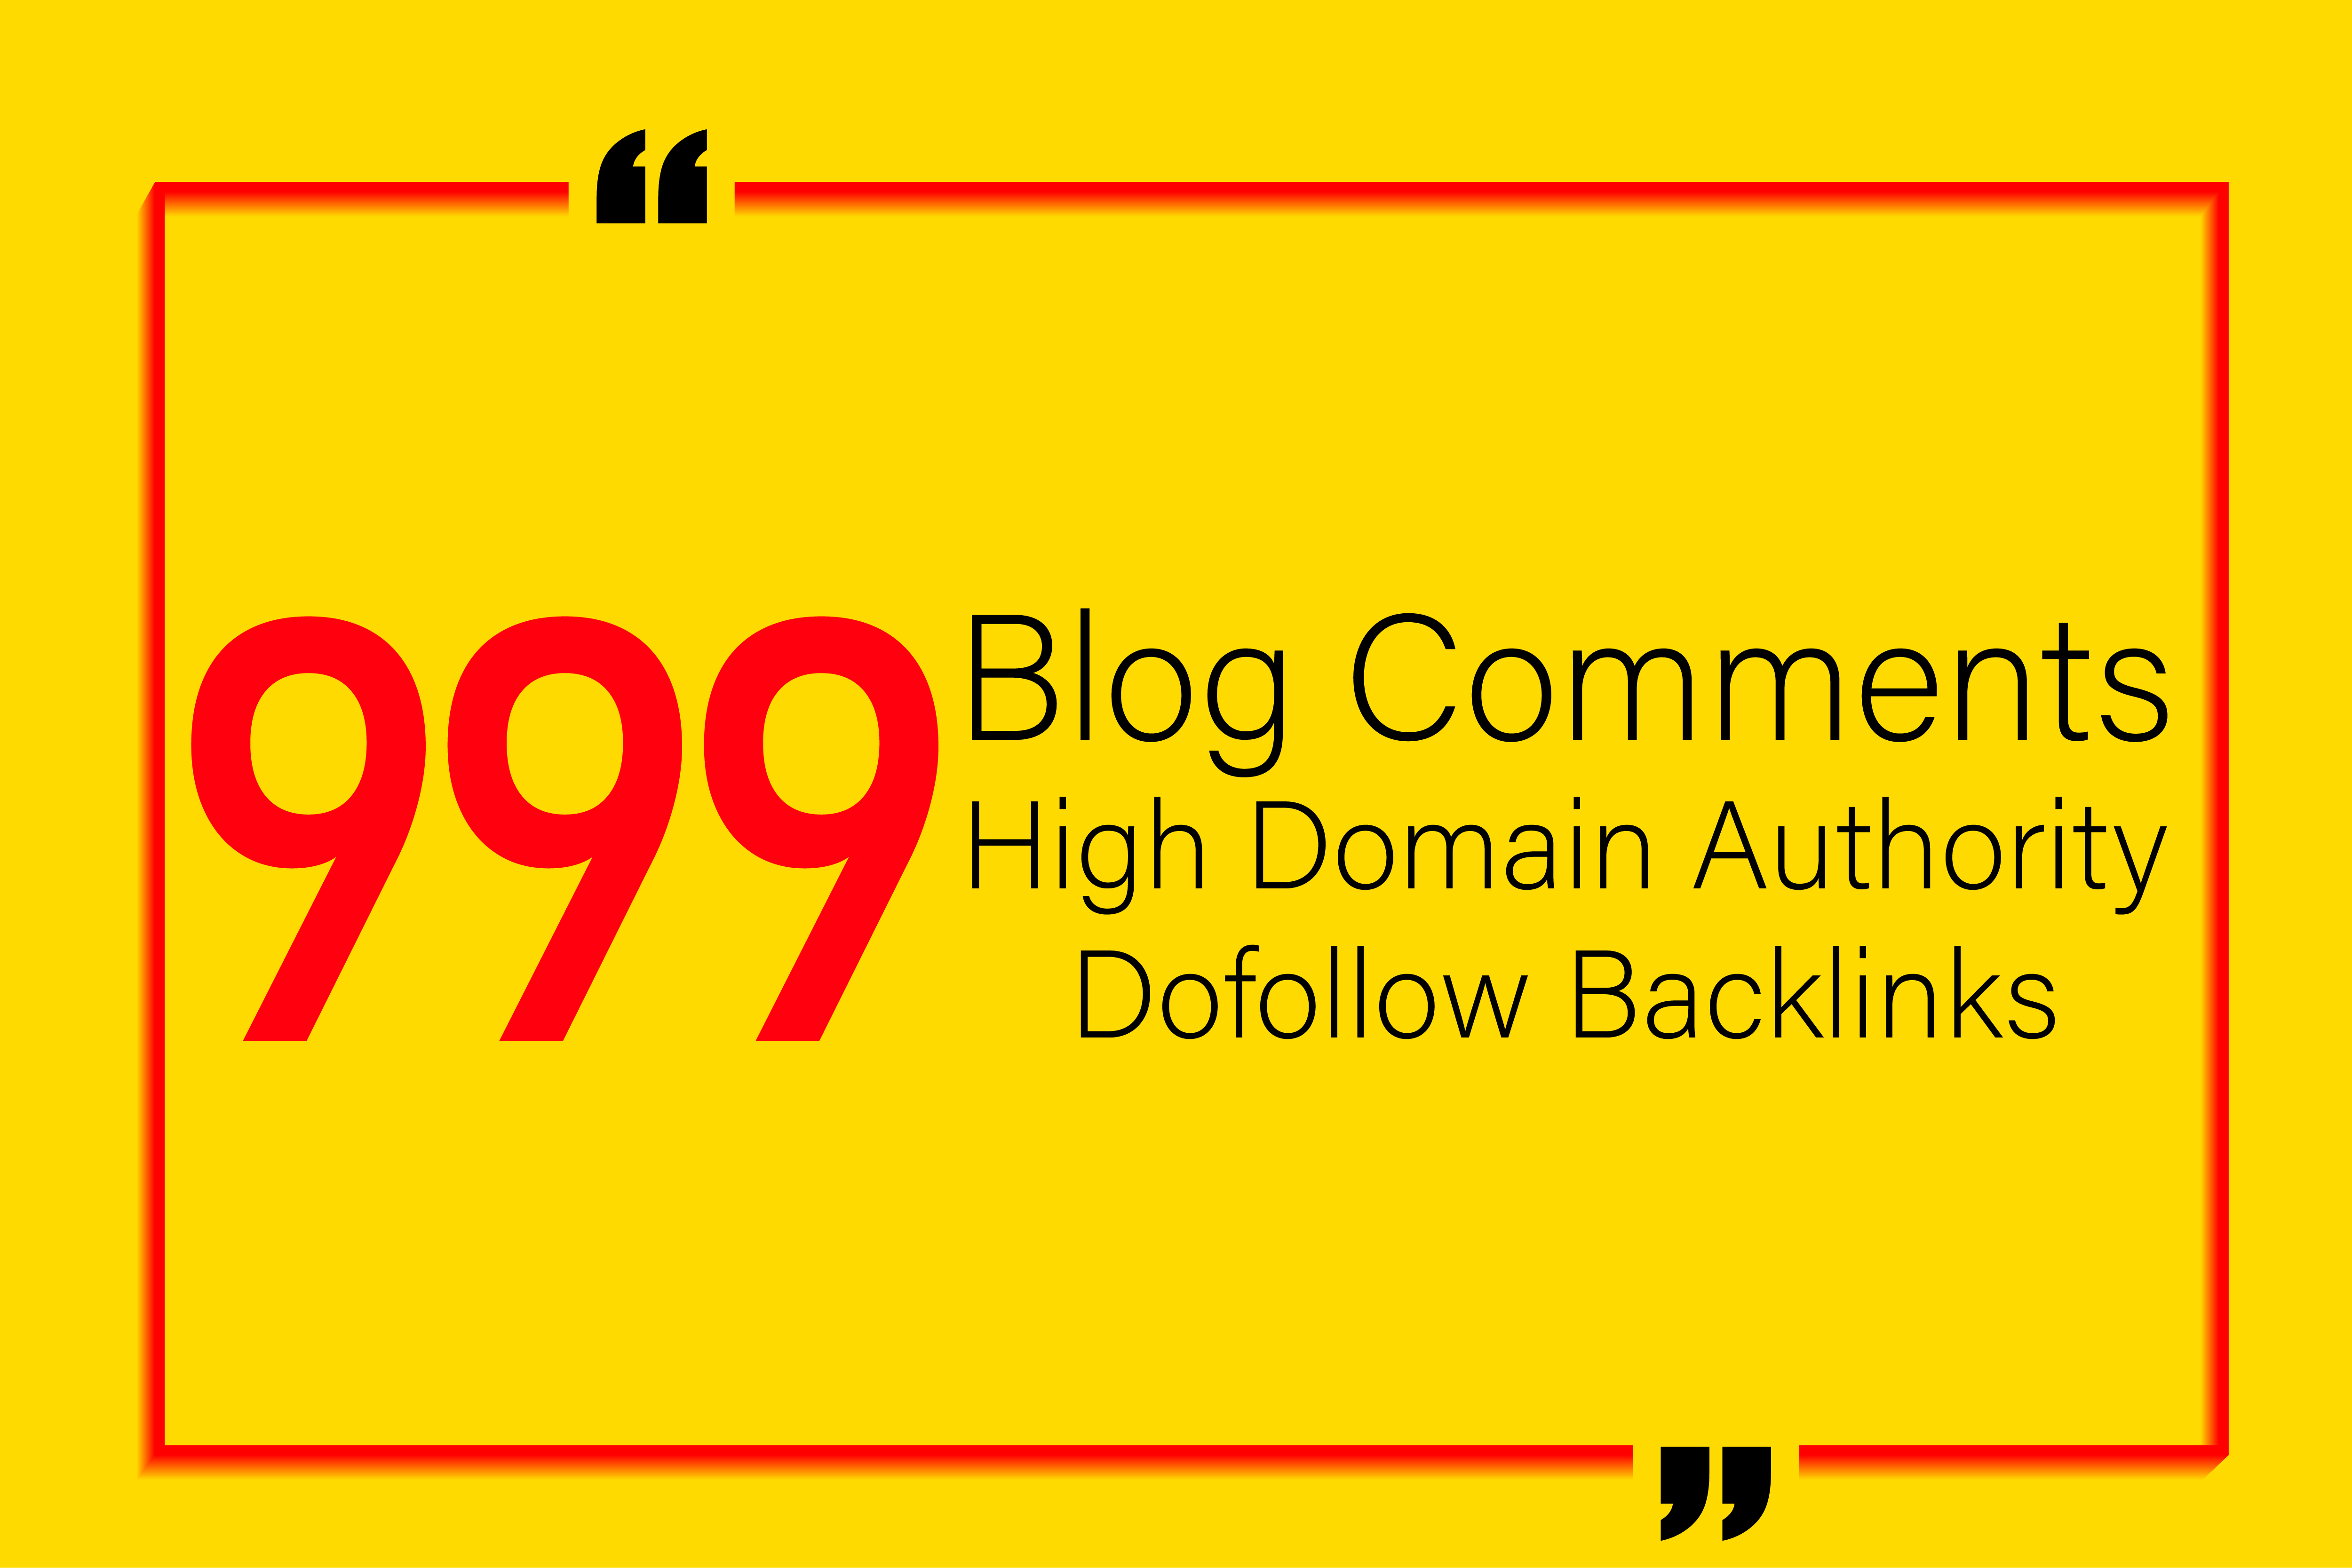 Manually Create 999 High Quality Dofollow Blog Comments High Authority Backlinks